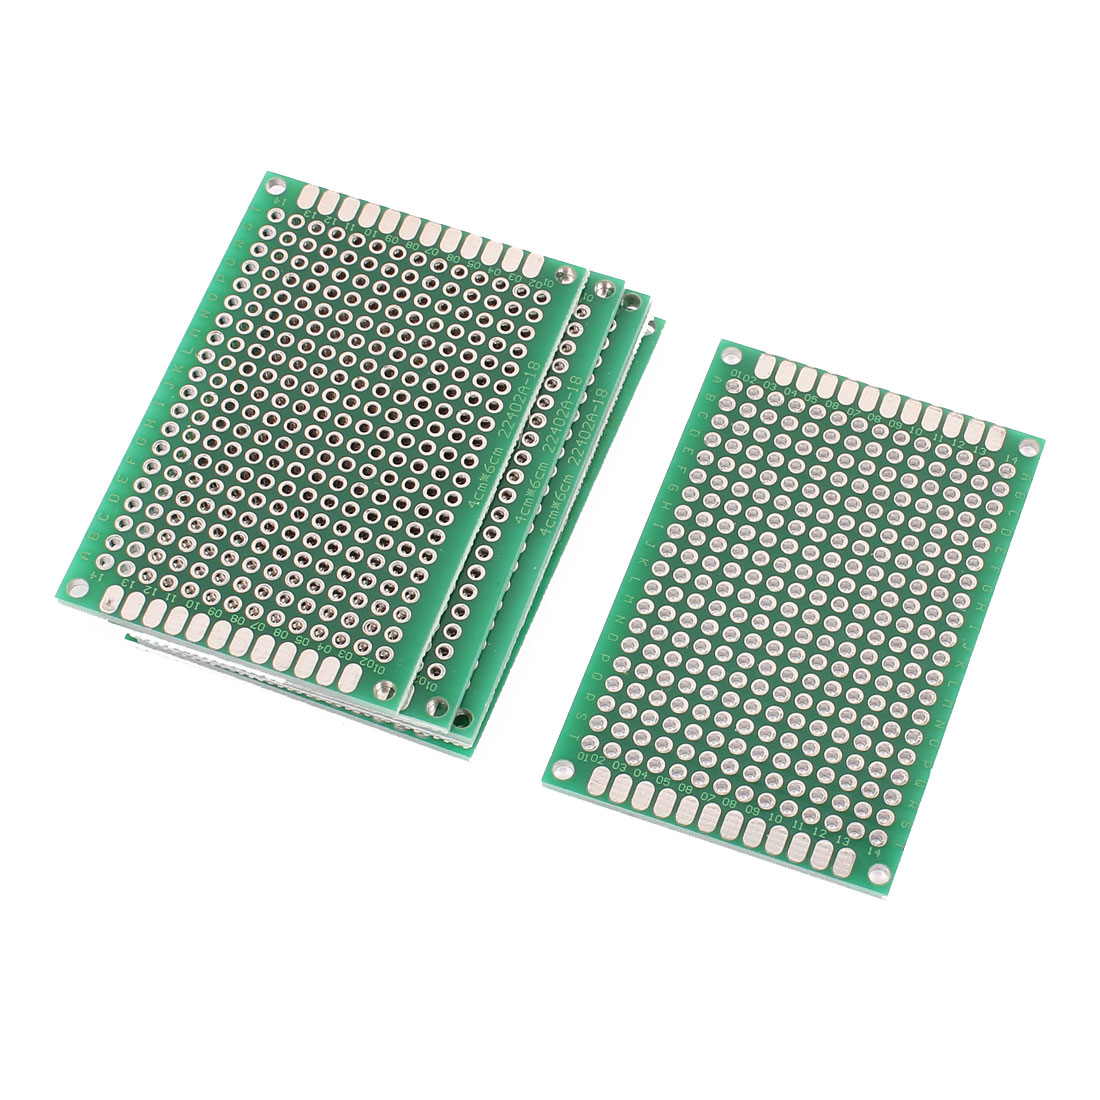 7 Pcs Single Sided Prototype Universal PCB Print Circuit Board 4 x 6CM Green